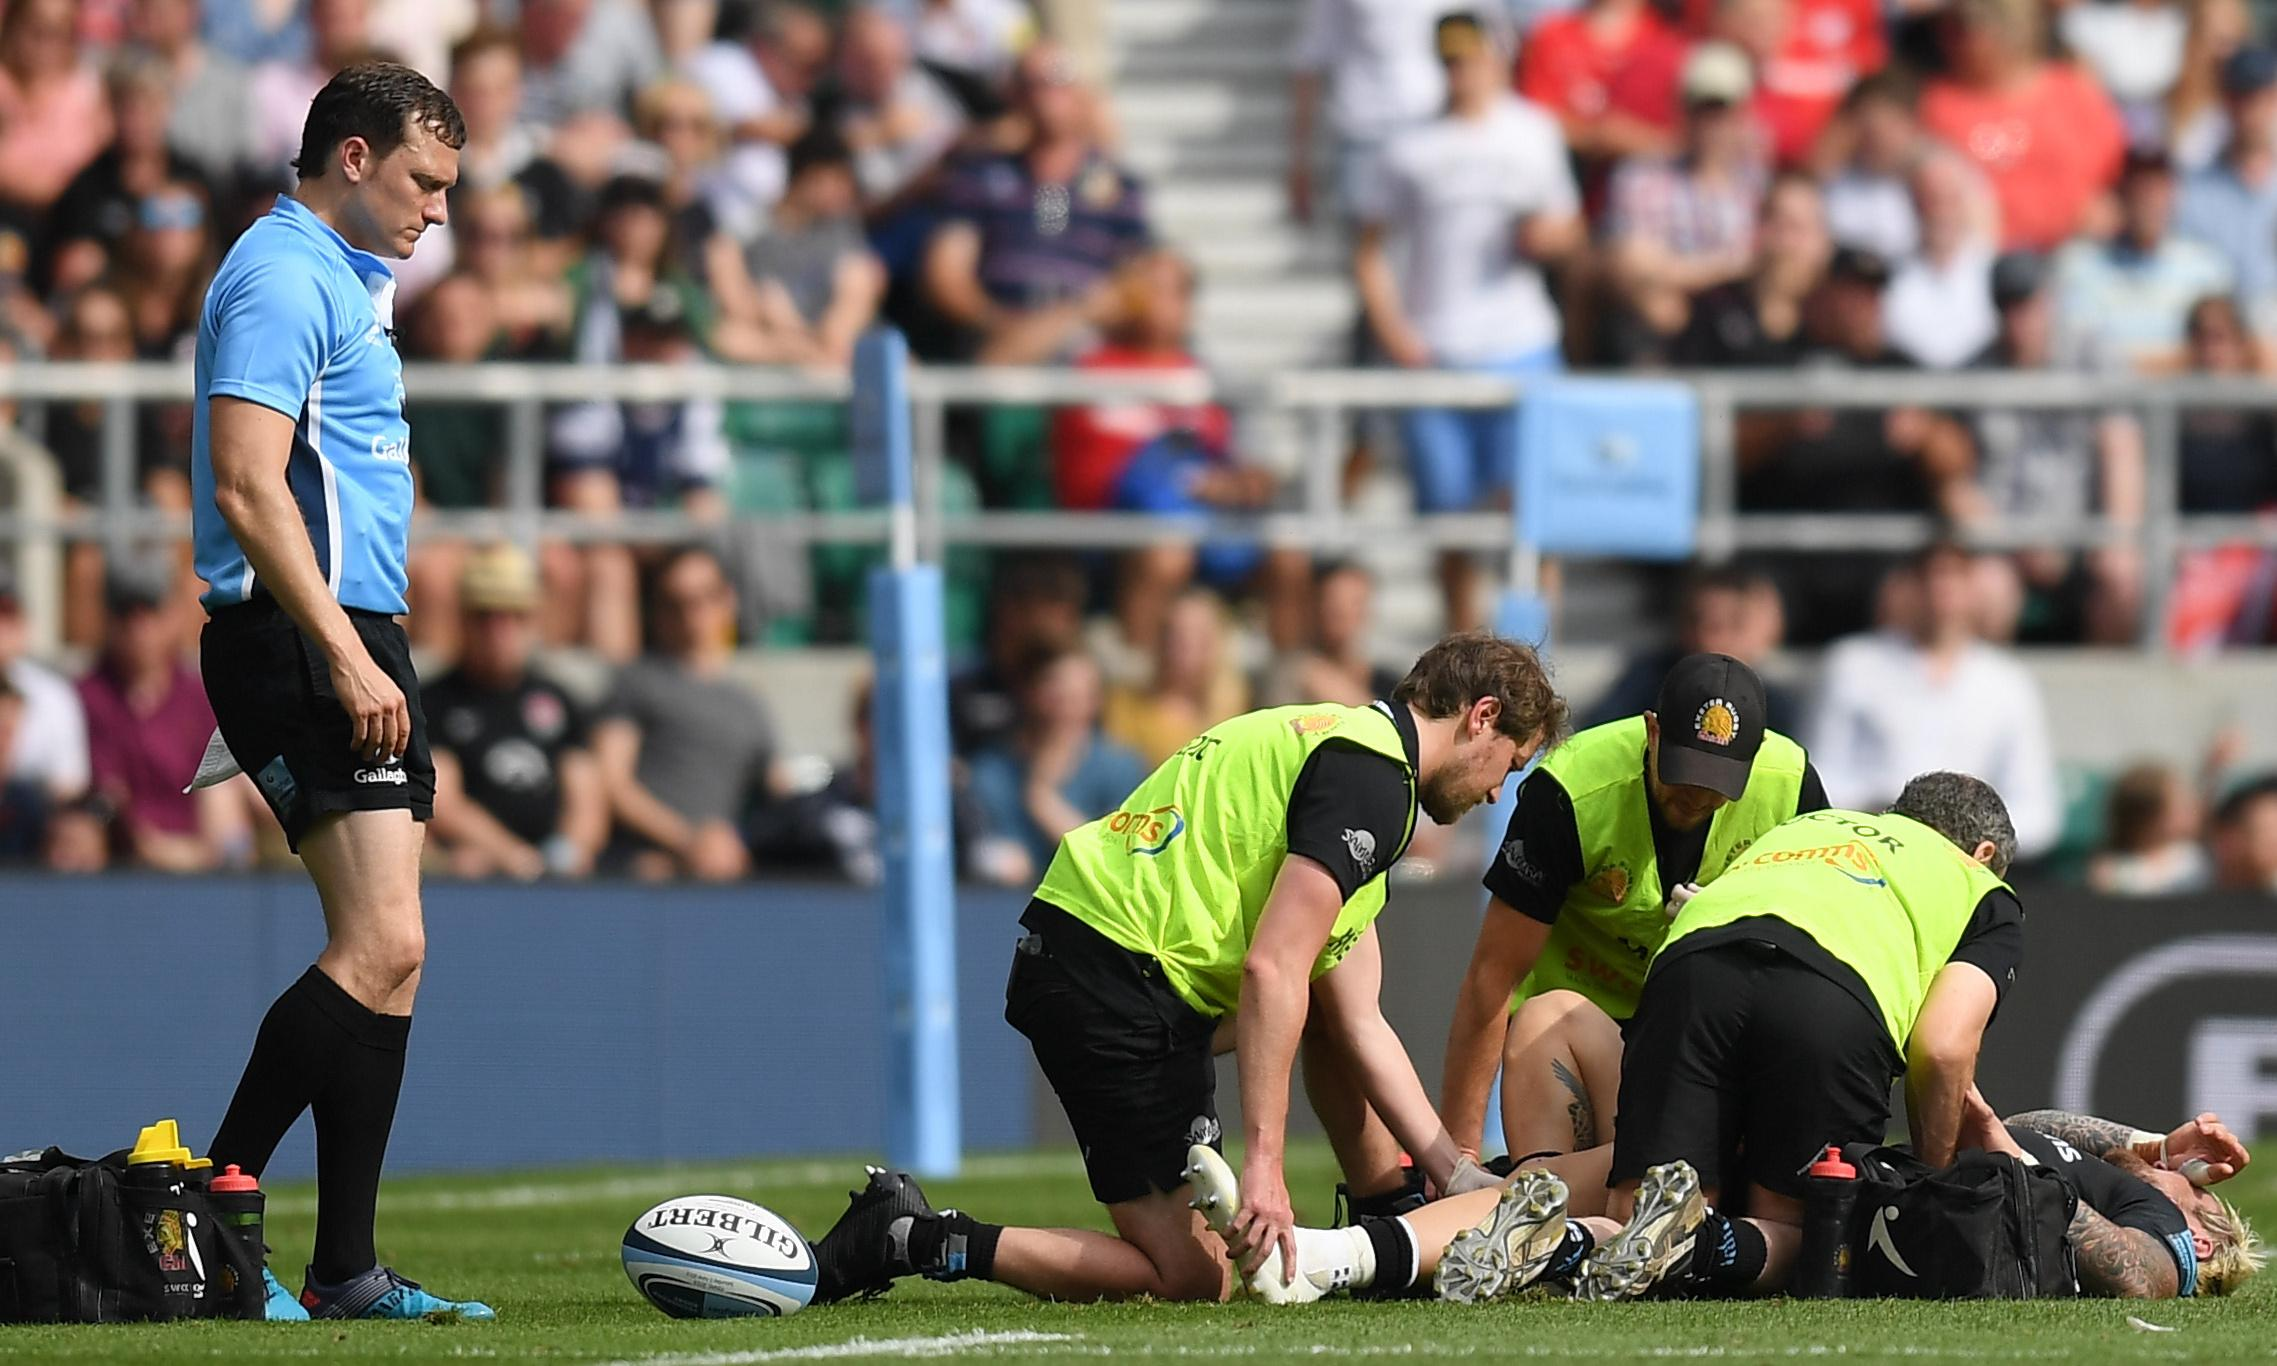 England's Jack Nowell in fitness race for Rugby World Cup after ankle surgery